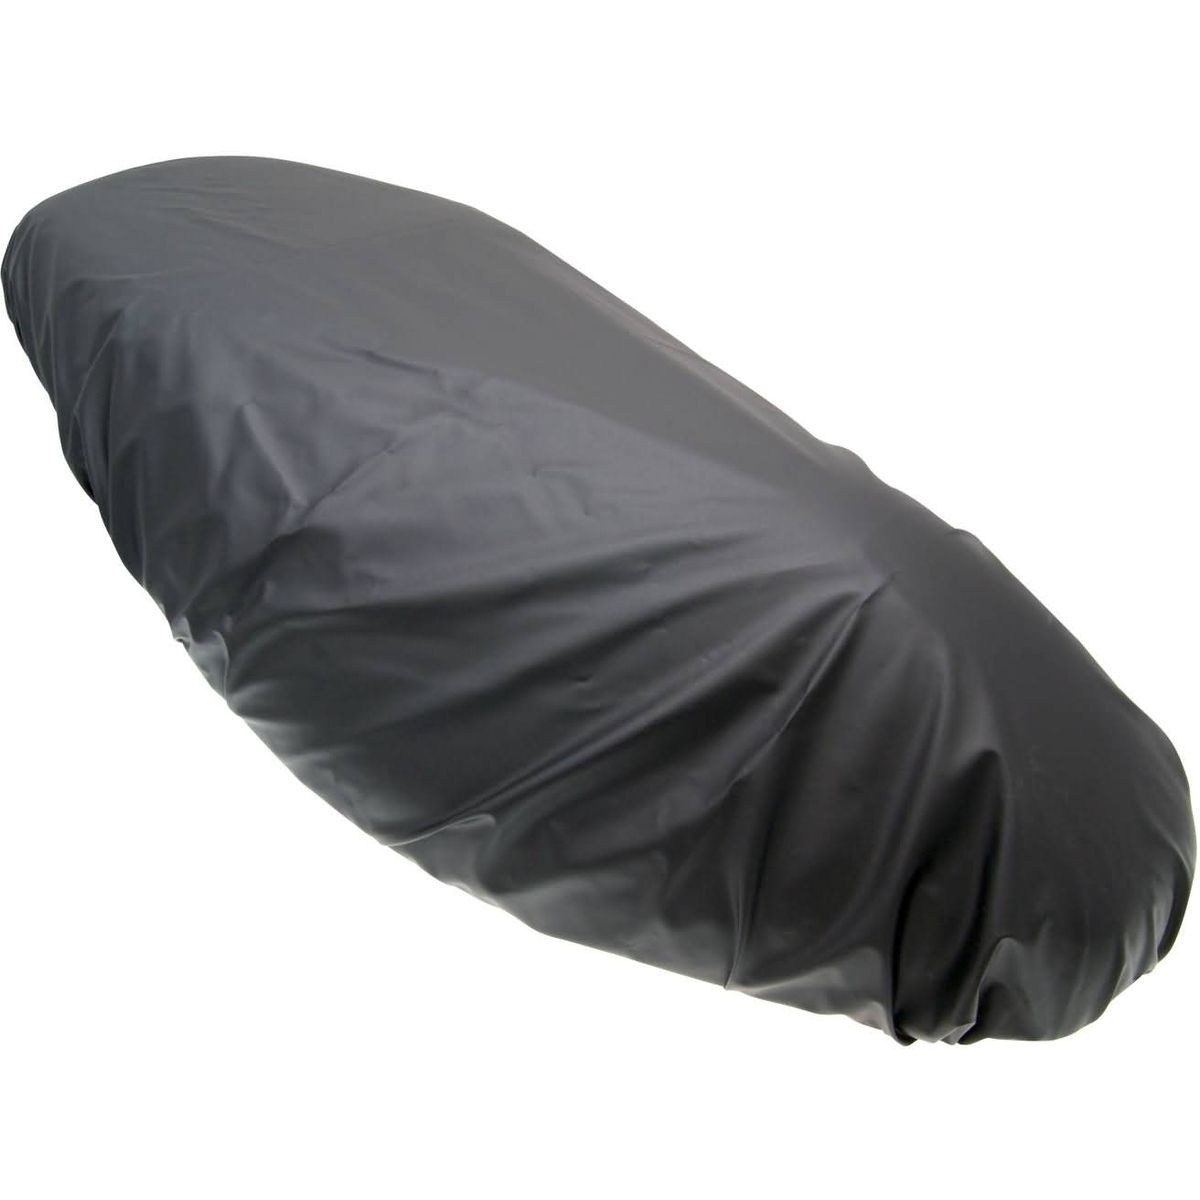 seat cover xl removable black in color for scooters 31063 17 42 eur. Black Bedroom Furniture Sets. Home Design Ideas